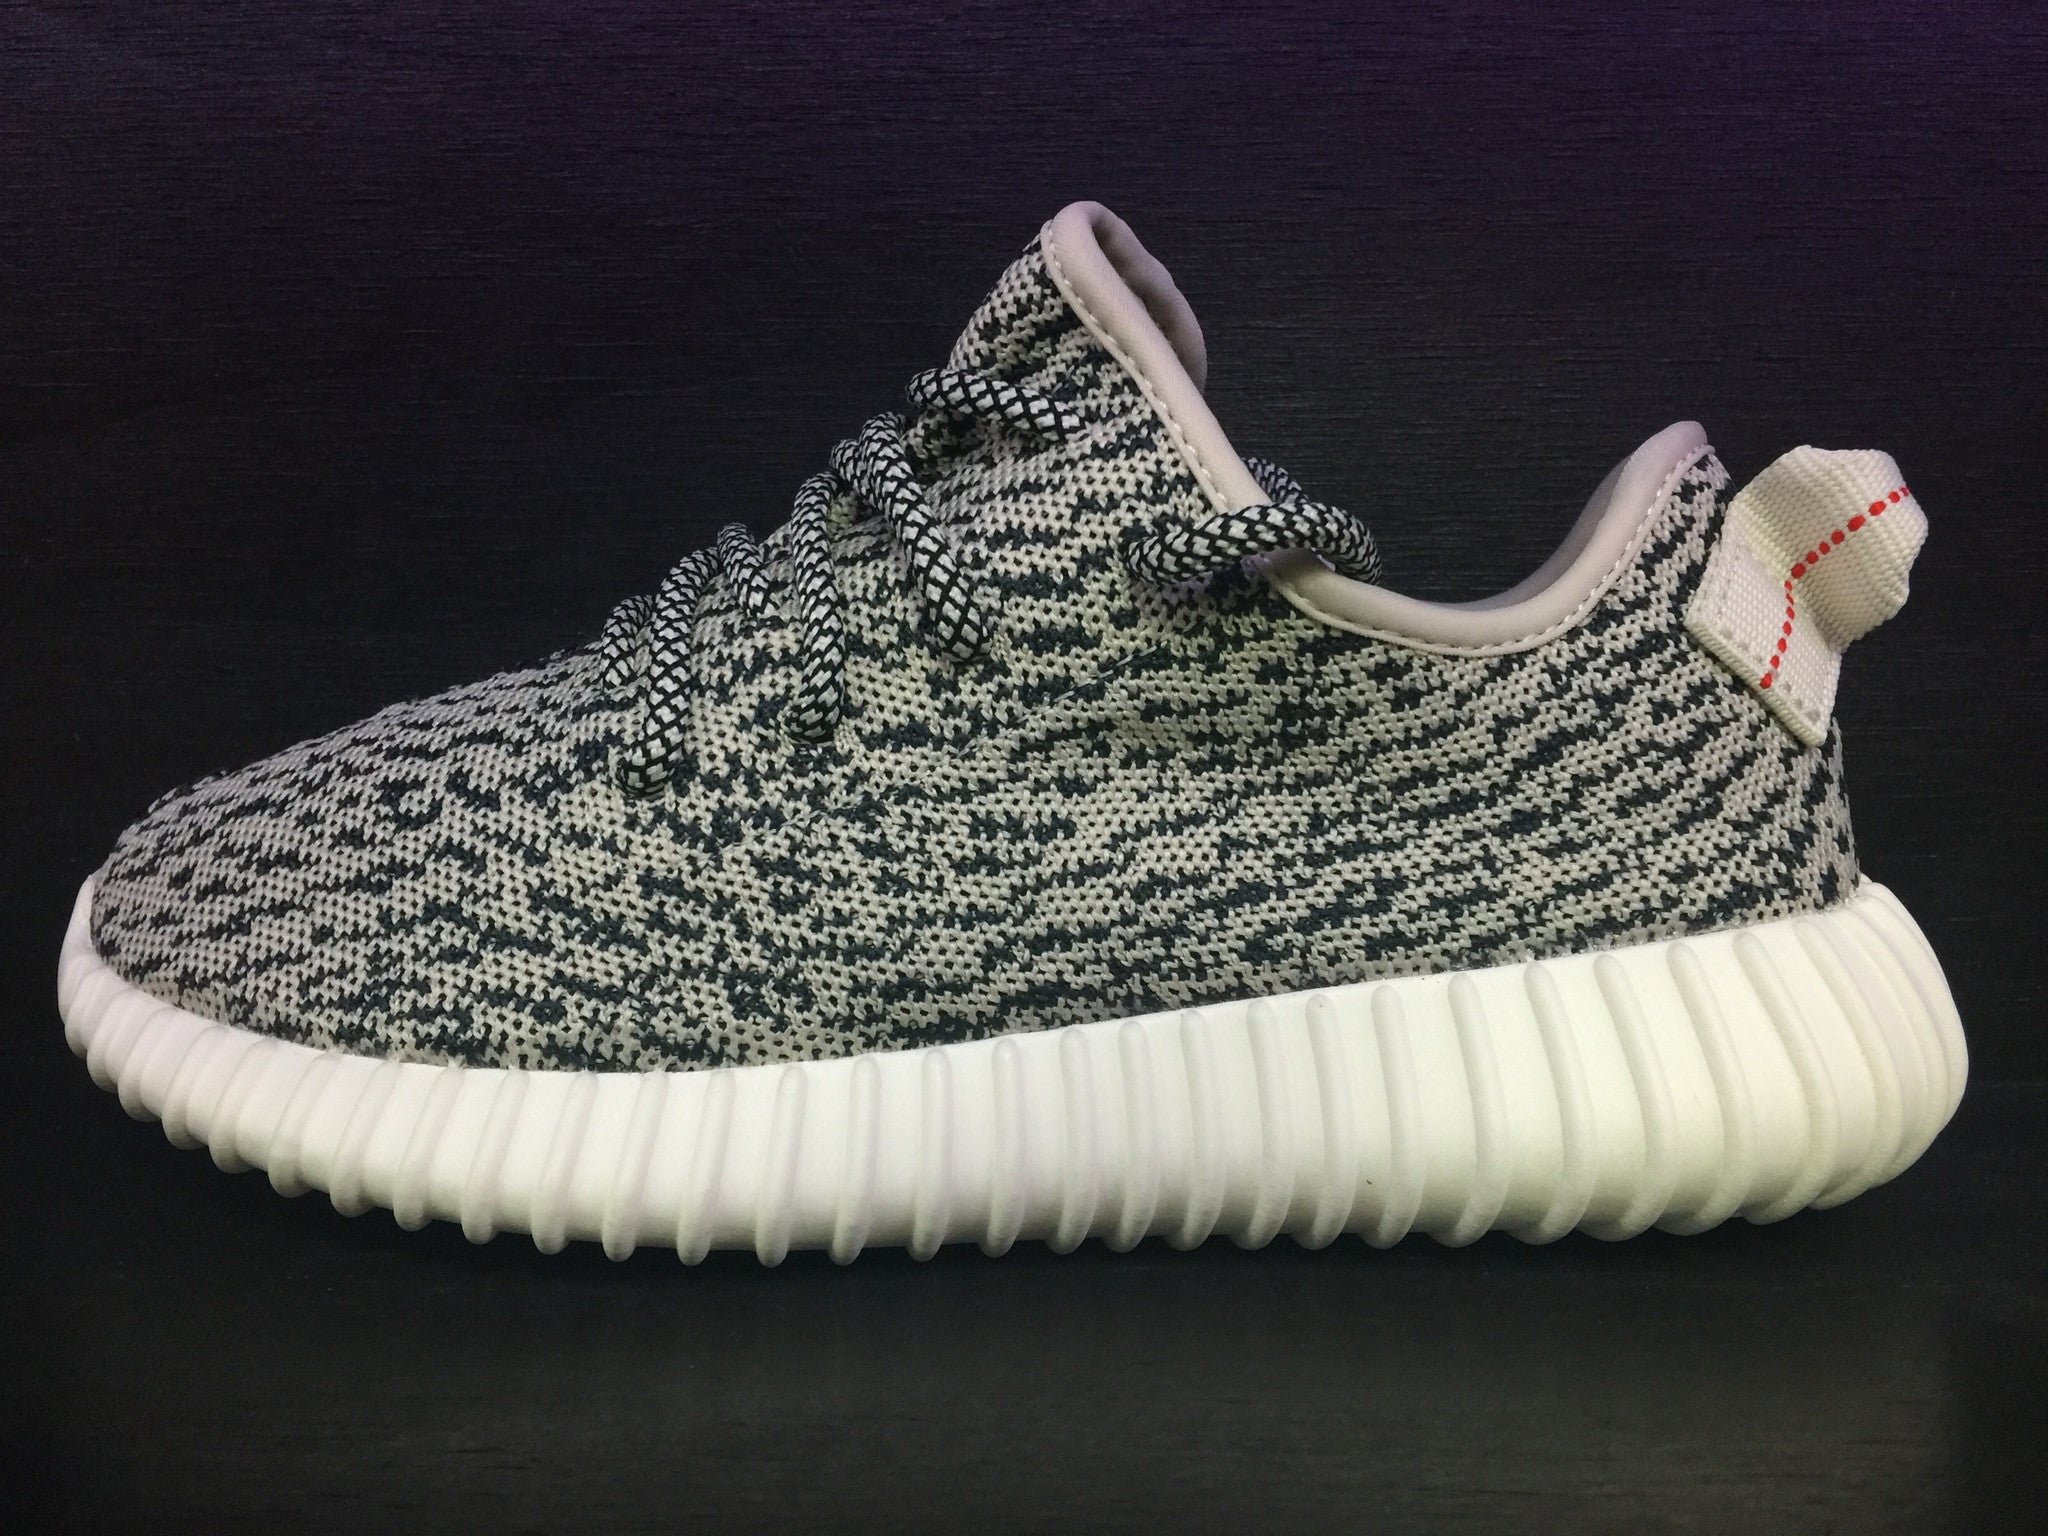 Yeezy Boost 350 'Turtle'